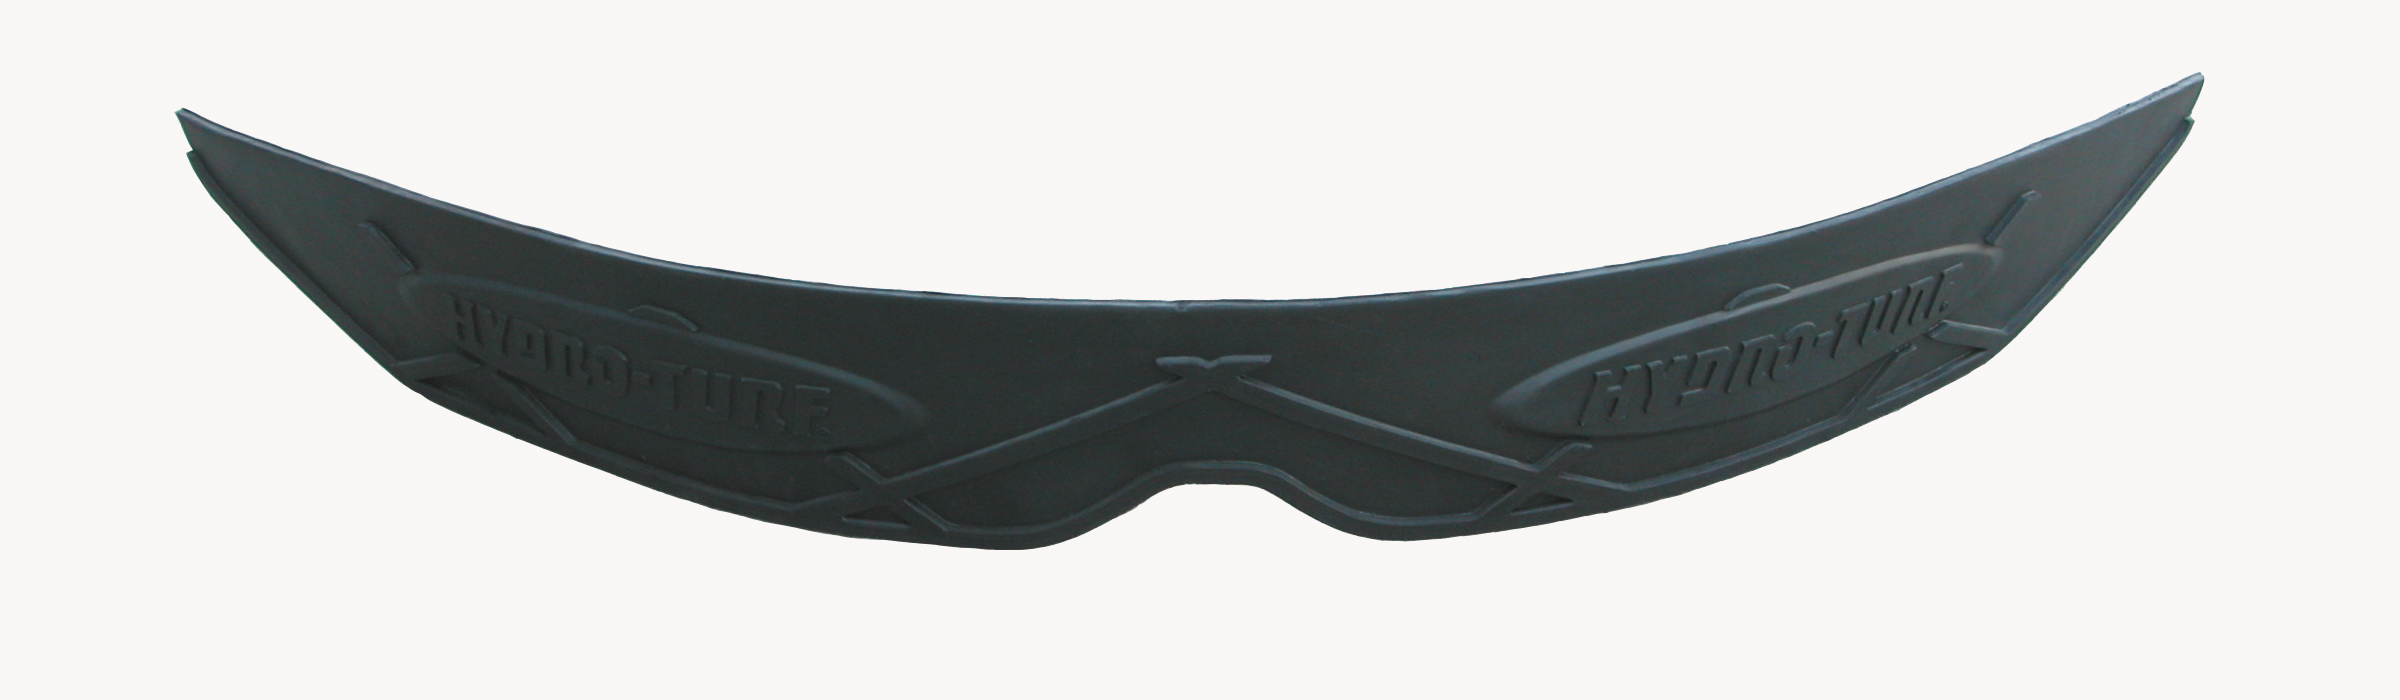 "HYDRO-TURF SPLASH GUARD 60/"" MOLDED HIGH D ENSITY EVA FOAM PART# TS03"